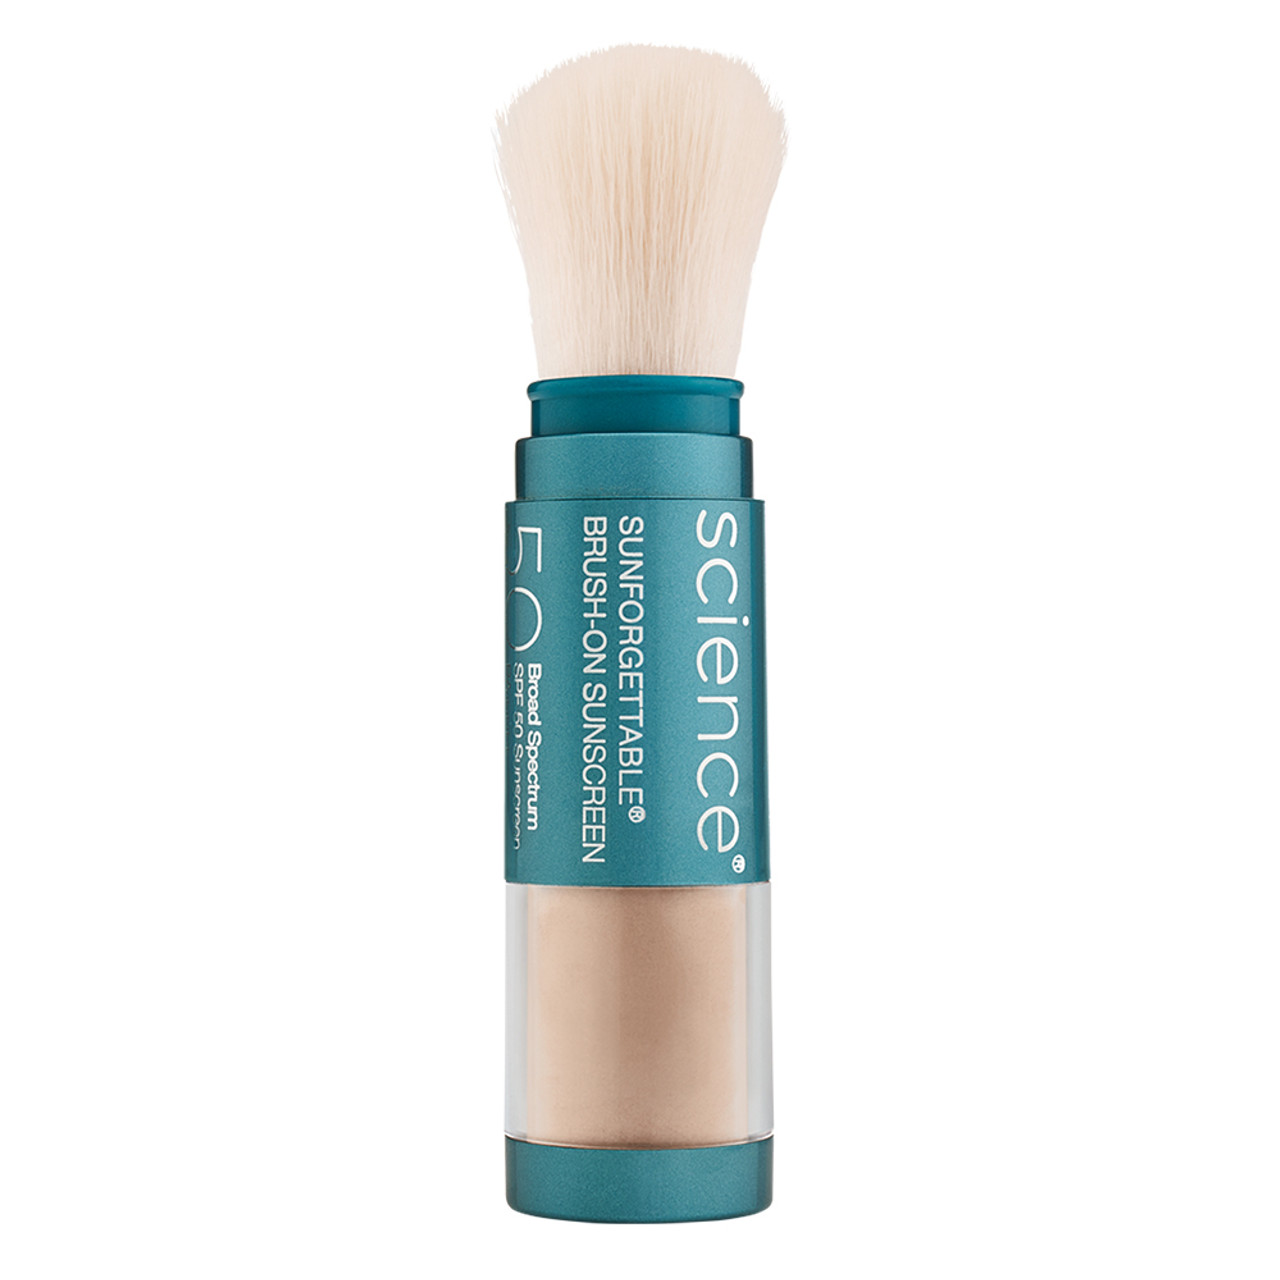 Colorescience Sunforgettable Total Protection Sheer Matte Sunscreen Brush SPF 30